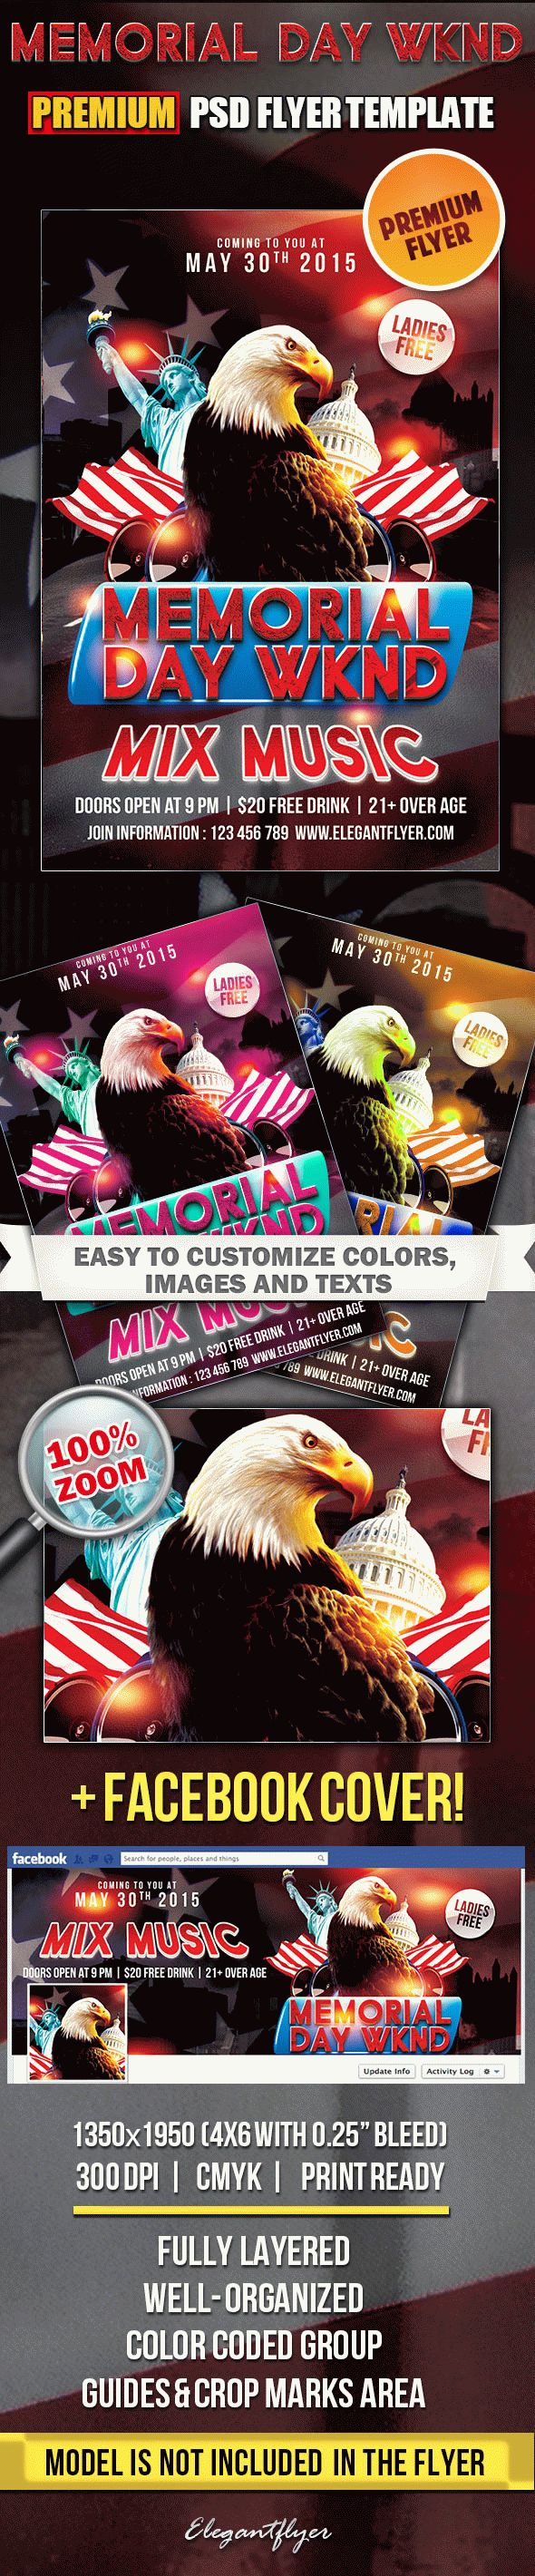 Memorial Day WKND – Flyer PSD Template + Facebook Cover